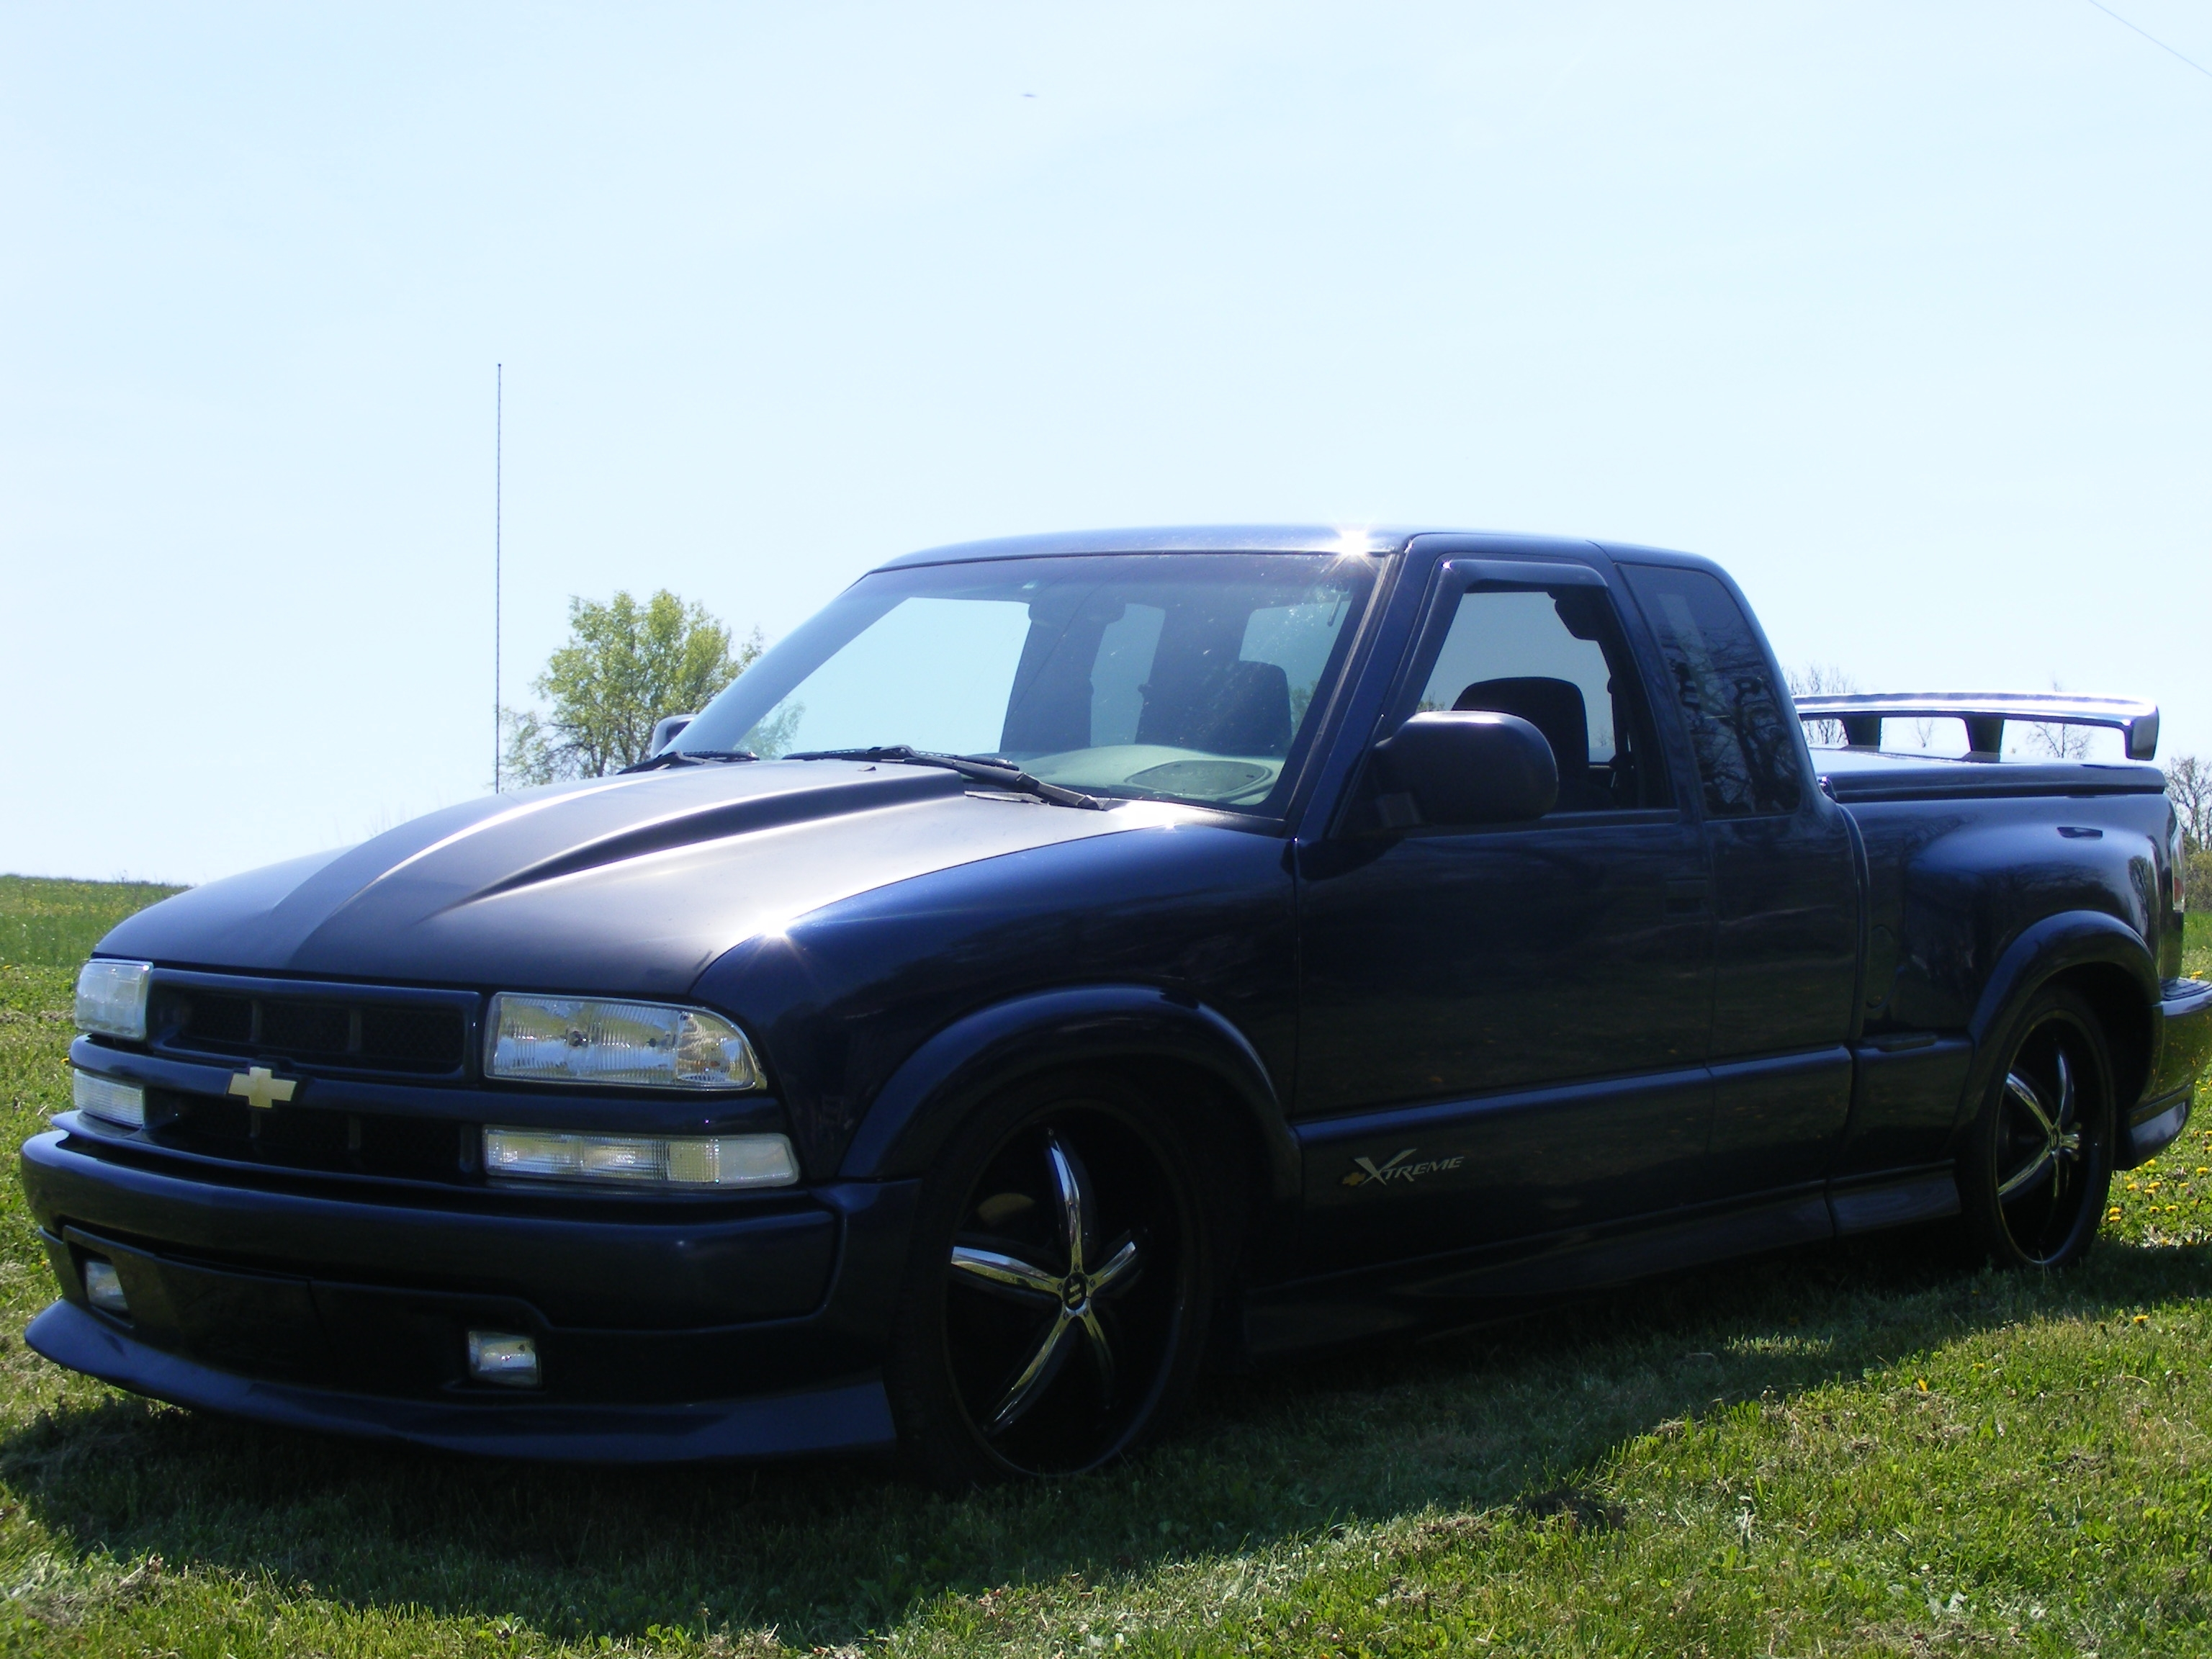 lowlife316 39 s 2002 chevrolet s10 extended cab pickup in cox 39 s creek ky. Black Bedroom Furniture Sets. Home Design Ideas